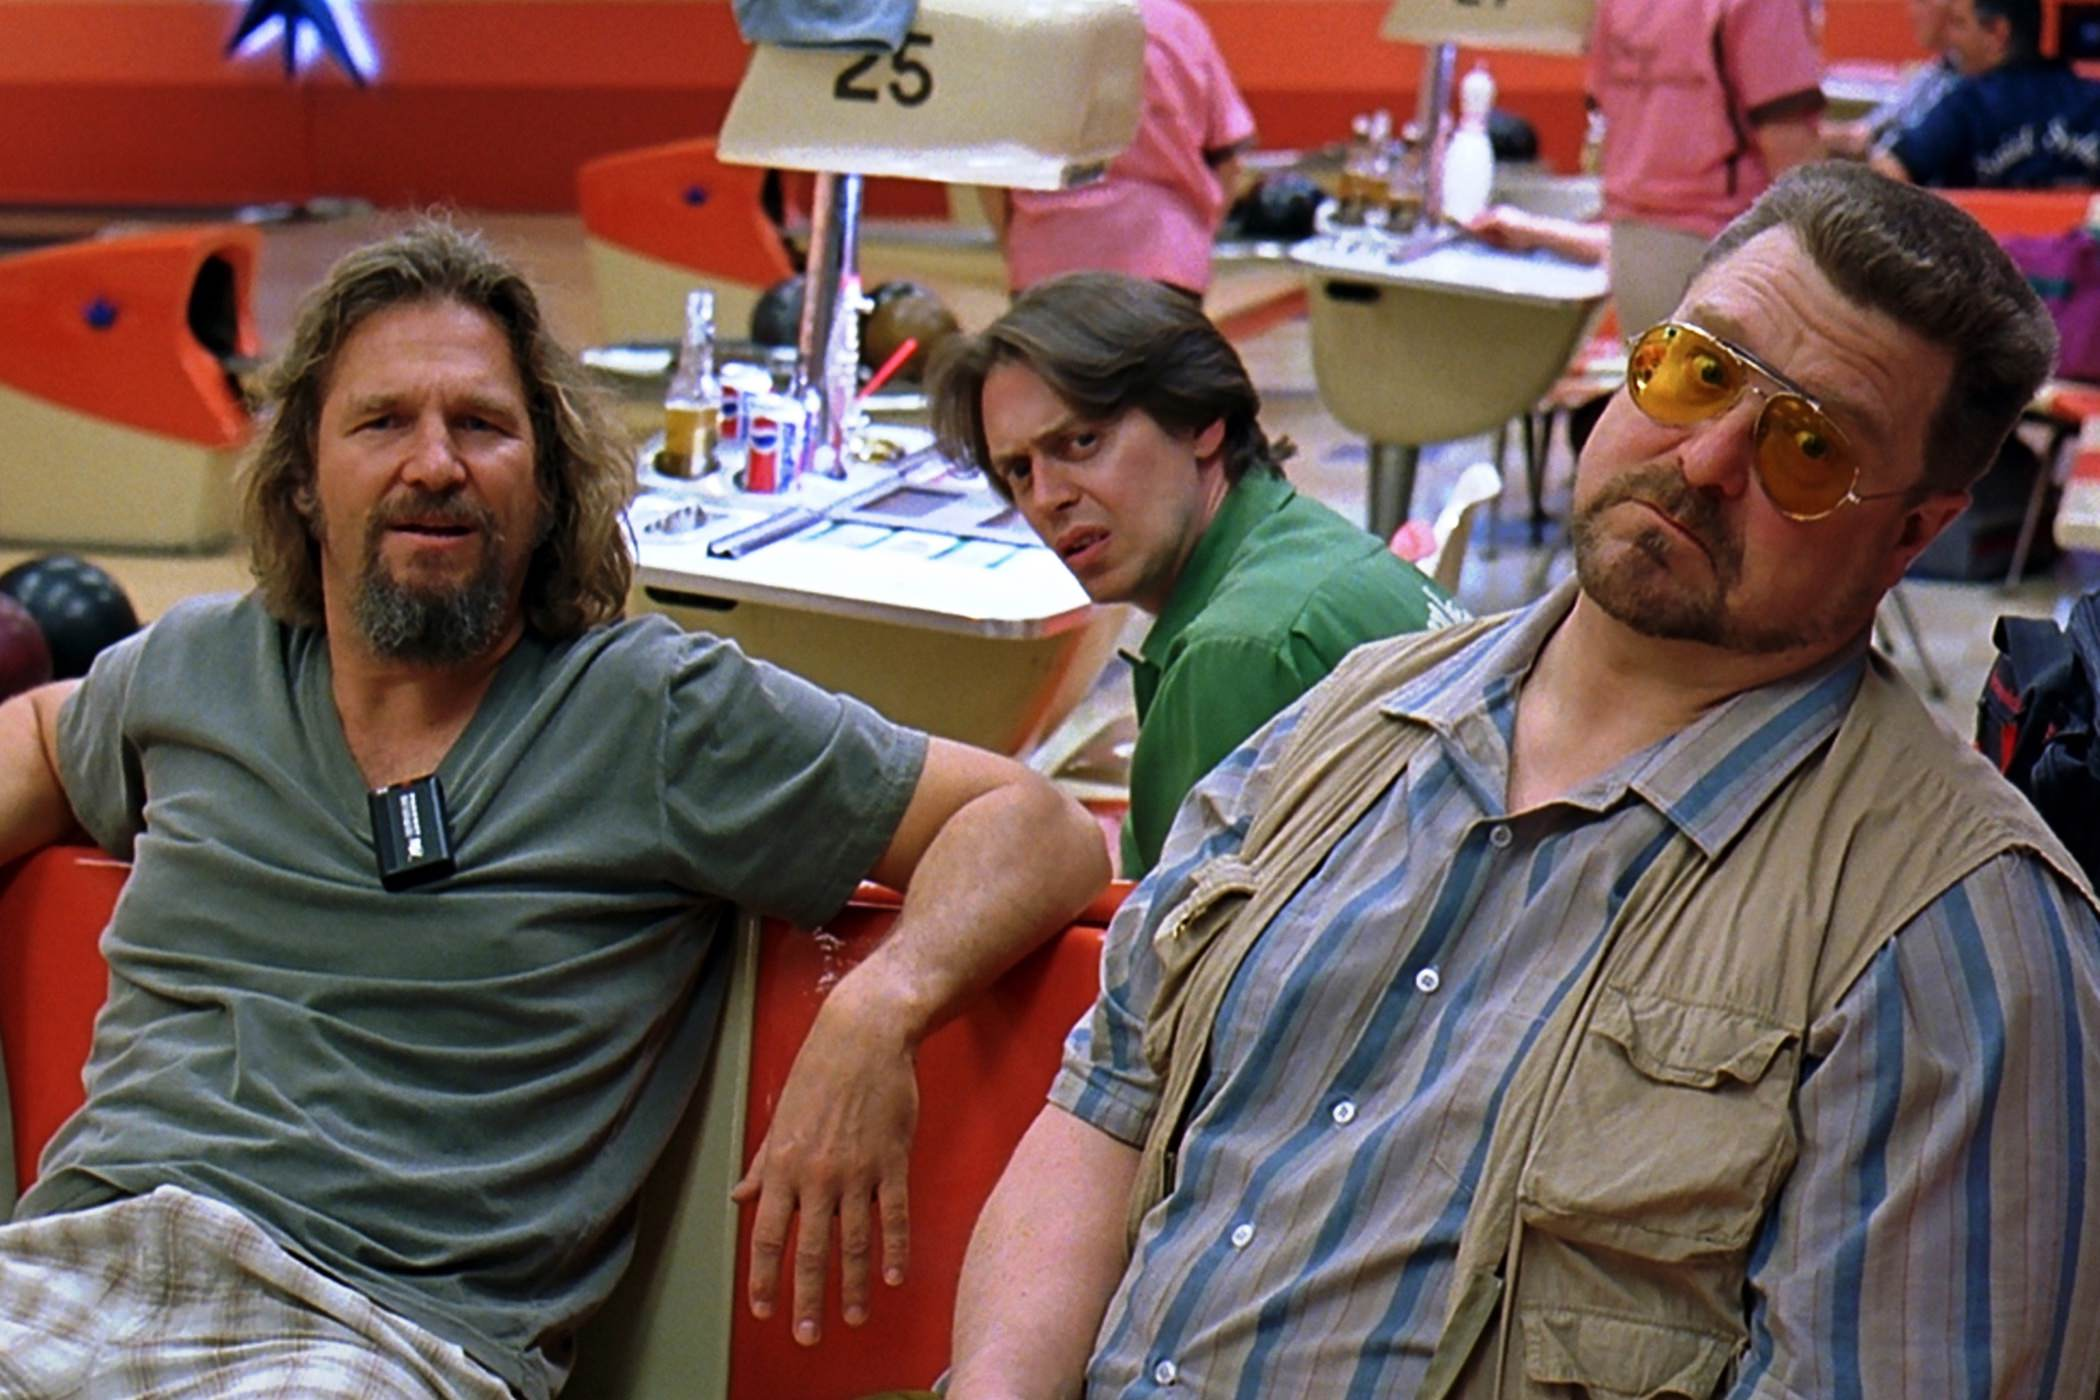 big-lebowski-john-goodman-jeff-bridges-steve-buscemi